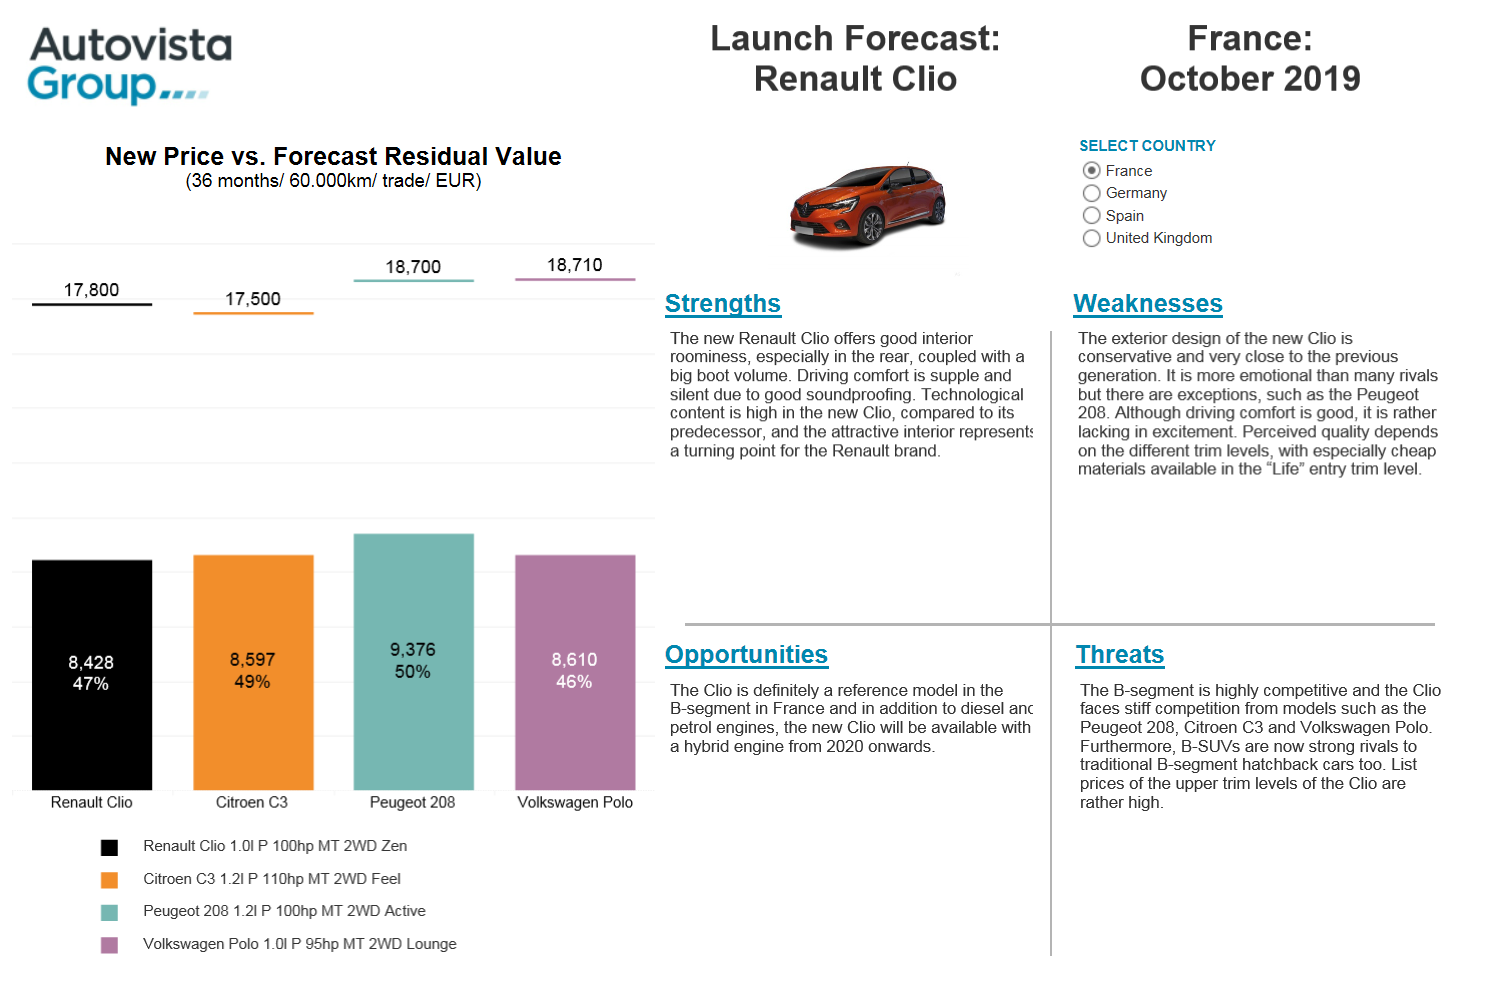 Renault Clio Launch Forecast